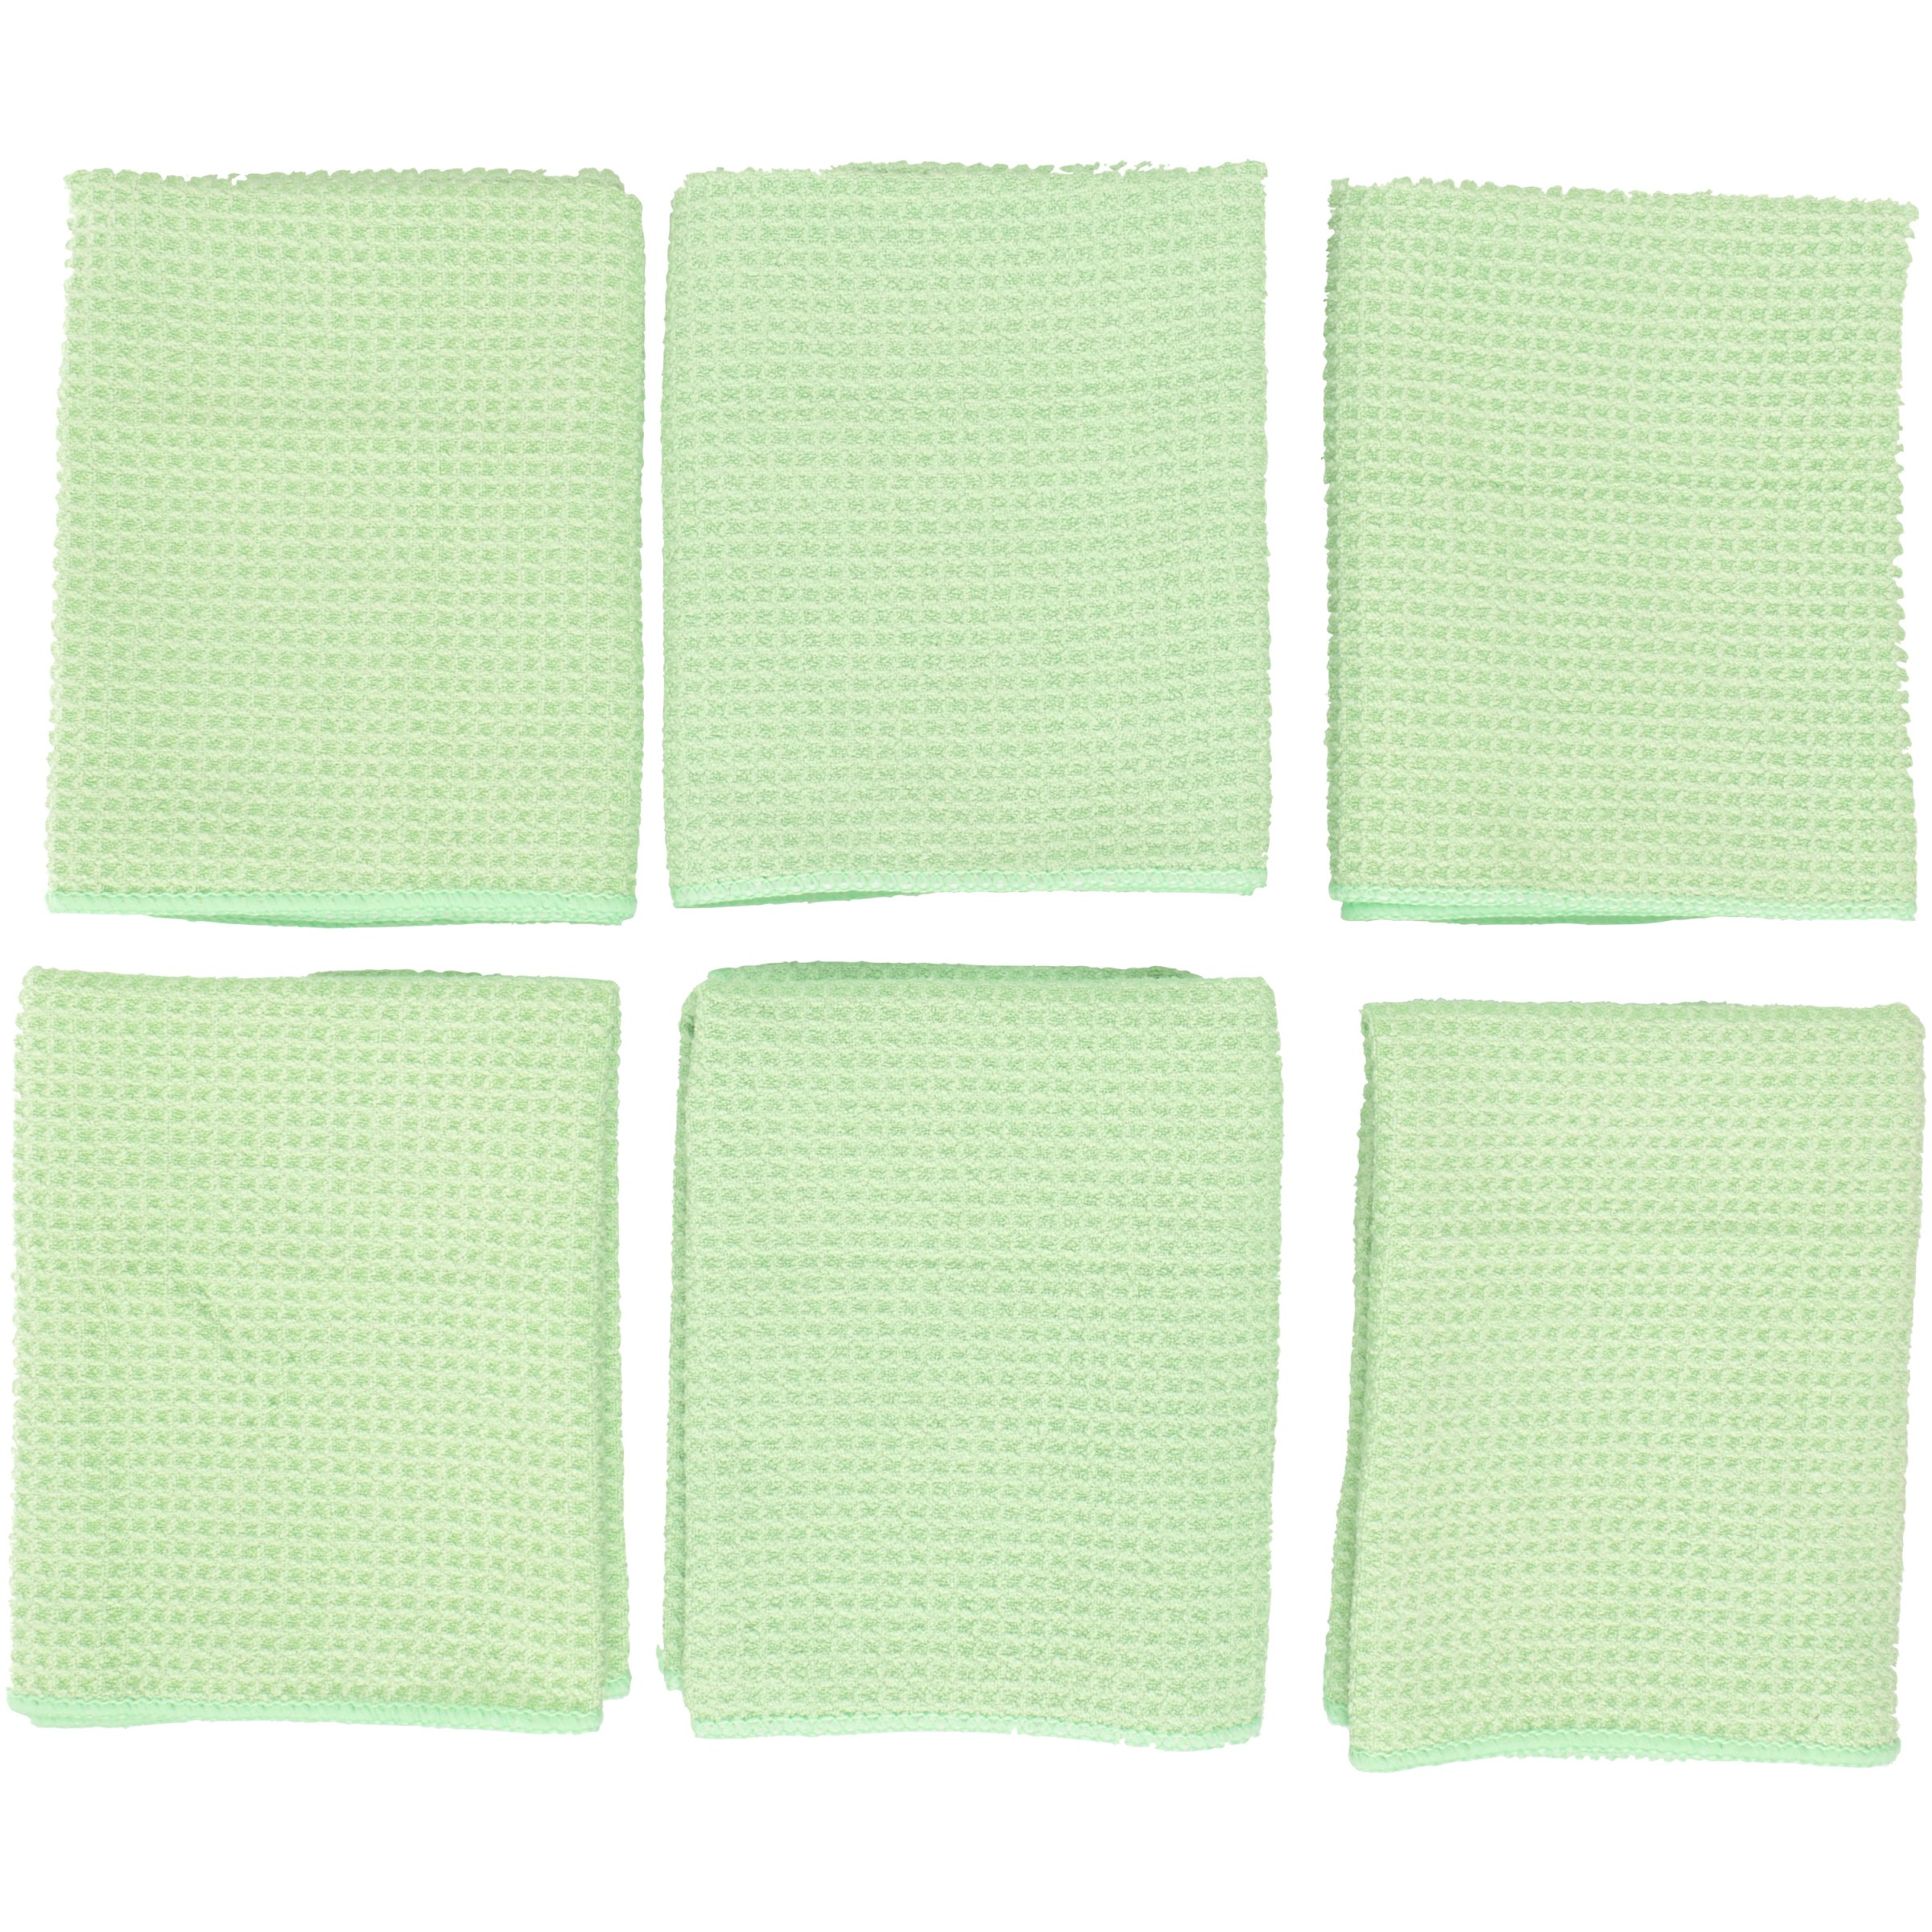 Zwipes Microfiber Large Green Bar, Wine, and Stemware Towels 6 ct Pack